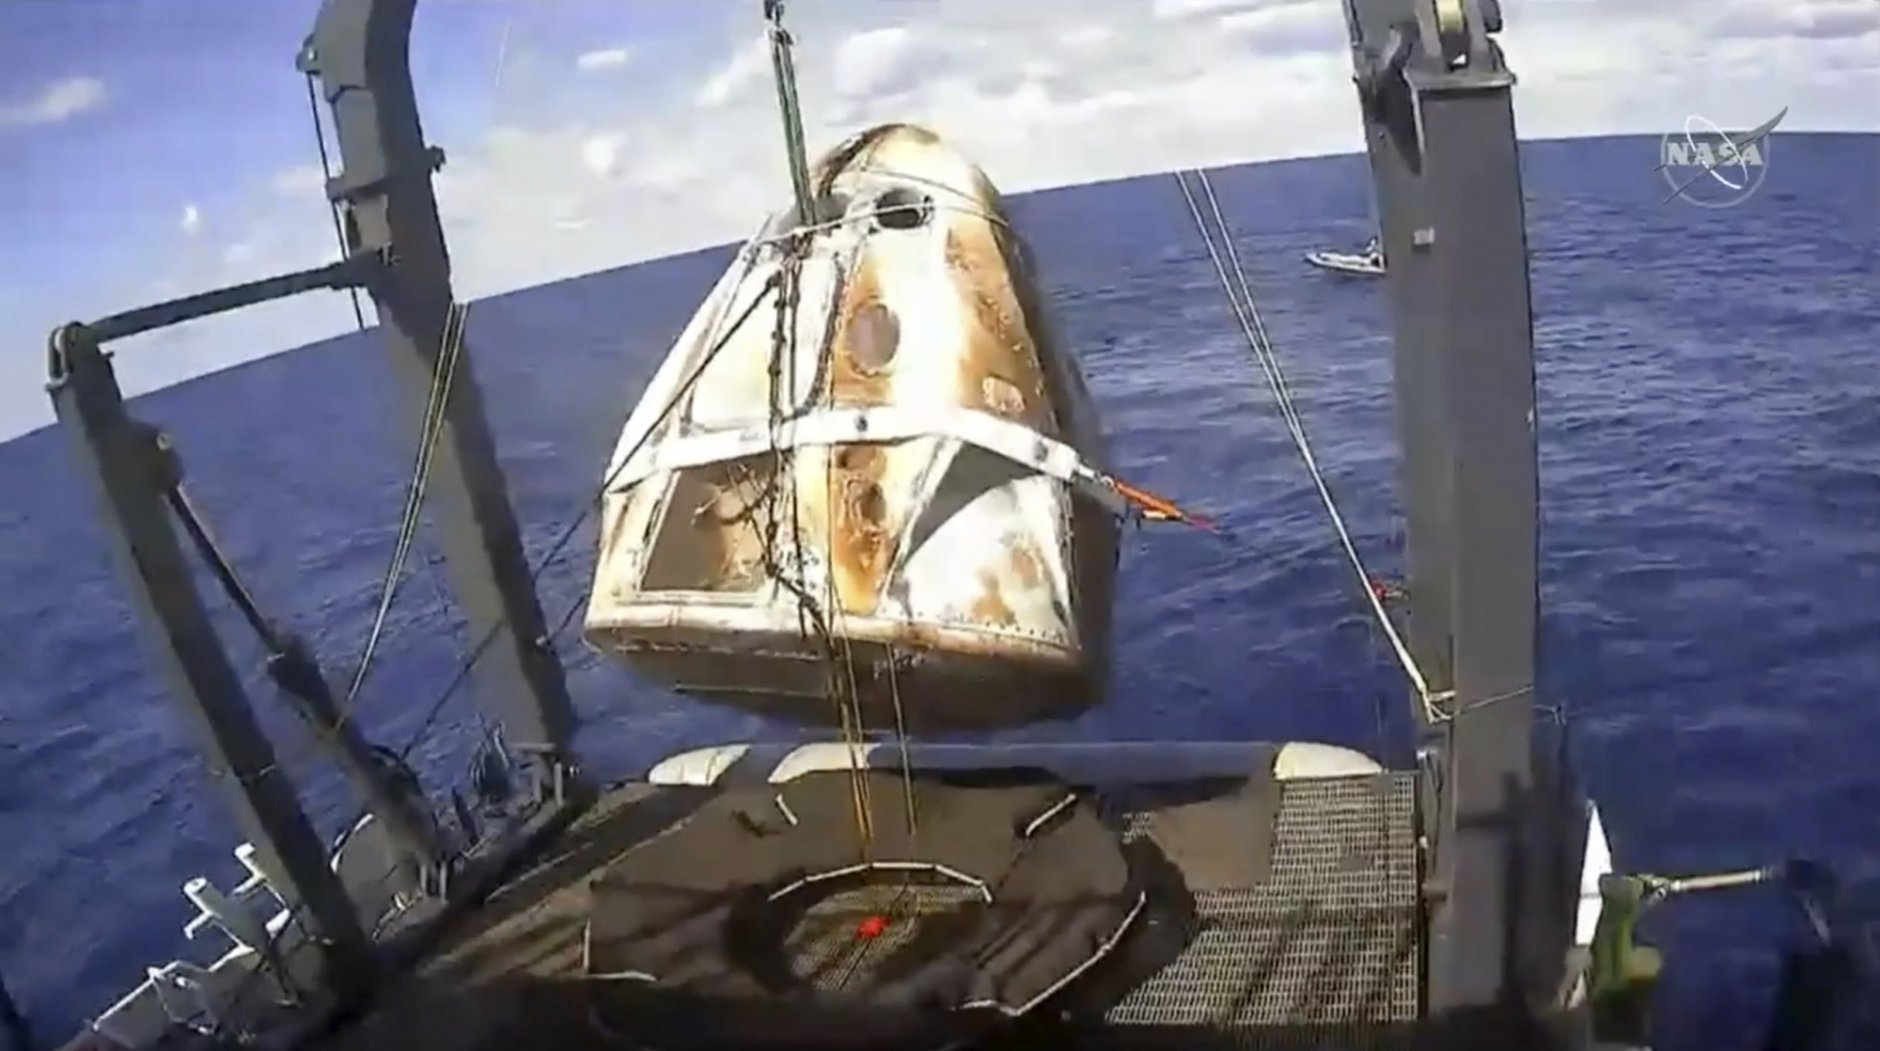 In this image from video made available by NASA, the SpaceX Crew Dragon capsule is hoisted onto a ship in the Atlantic Ocean off the Florida coast after it returned from a mission to the International Space Station. It marks the first time in 50 years that a capsule designed for astronauts returned from space by splashdown in the ocean. (NASA via AP)